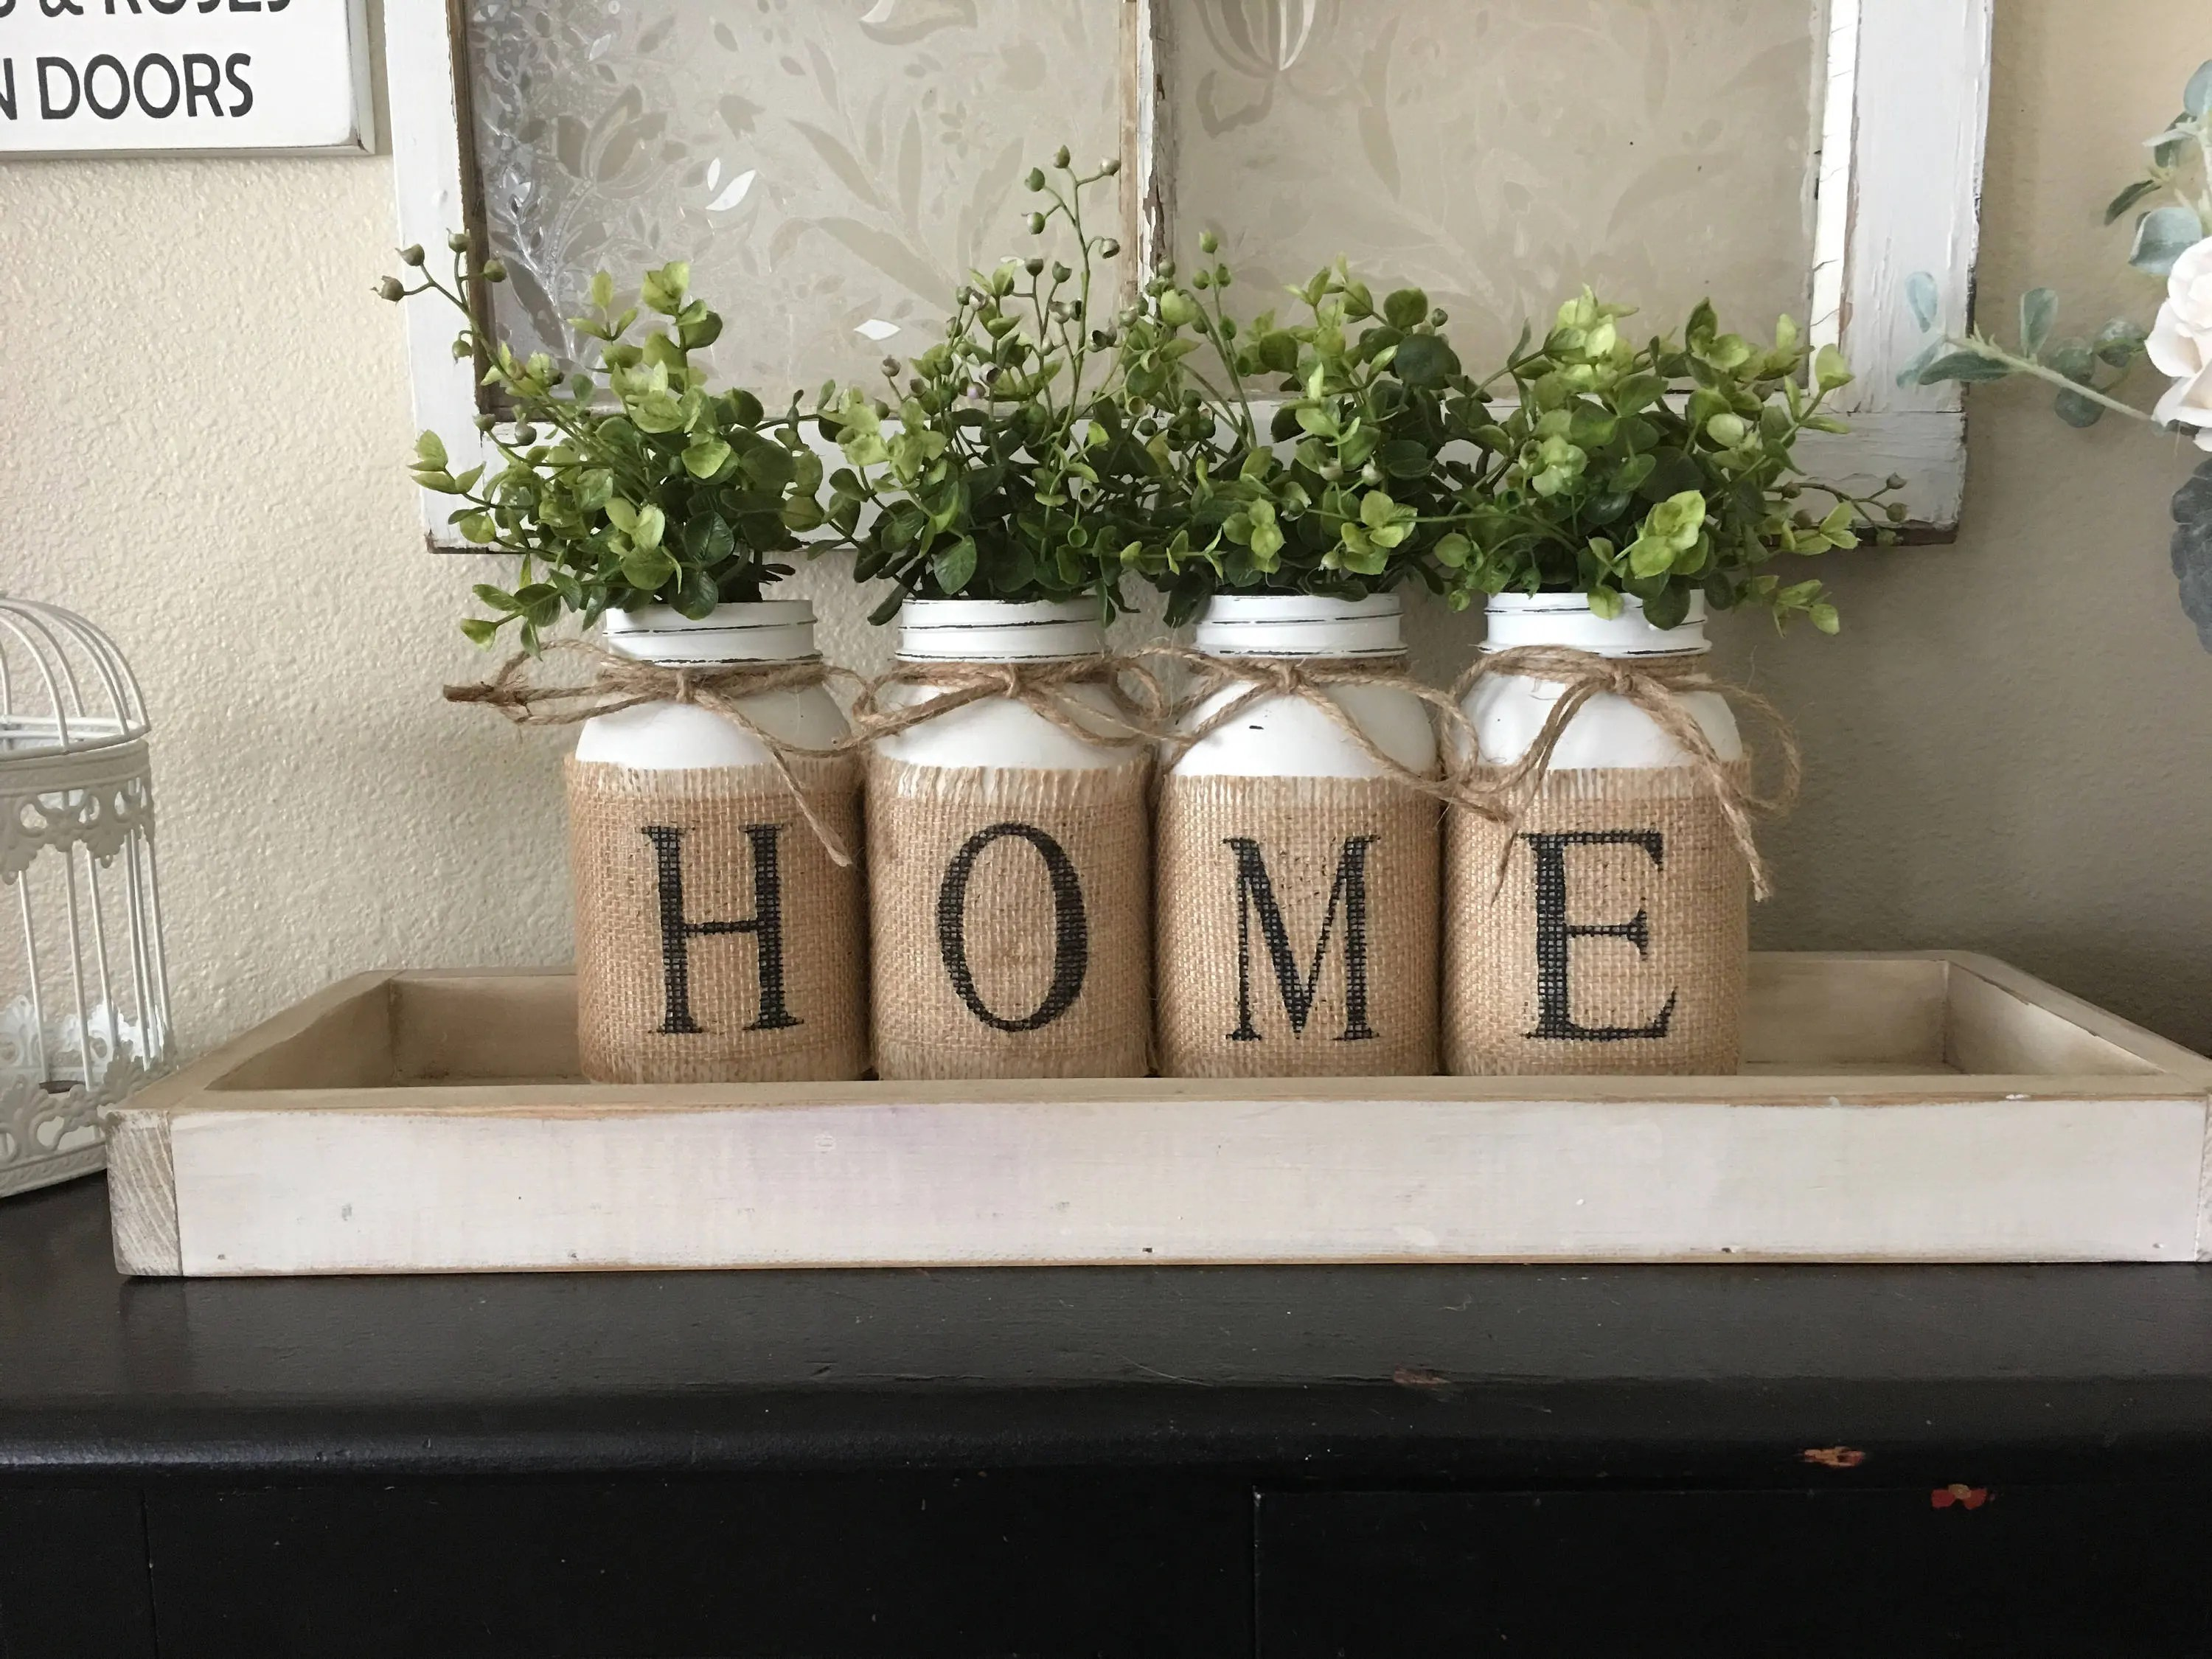 living room decorative items half wall tiles design for decor etsy country home mason jars with burlap painted flowers southern rustic